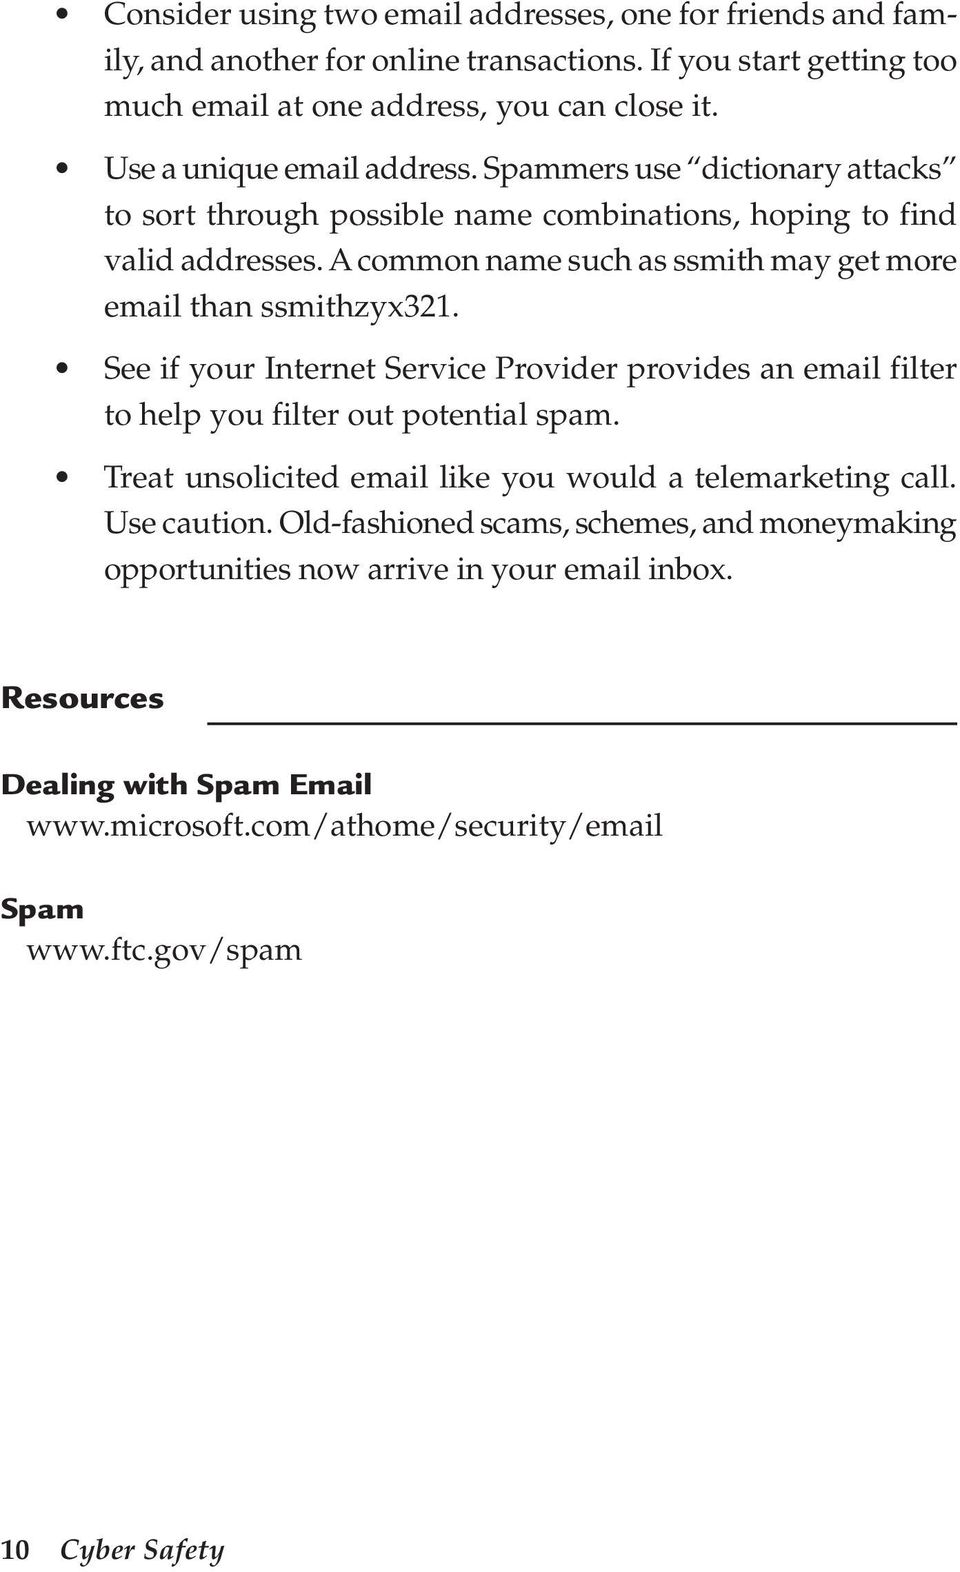 A common name such as ssmith may get more email than ssmithzyx321. See if your Internet Service Provider provides an email filter to help you filter out potential spam.